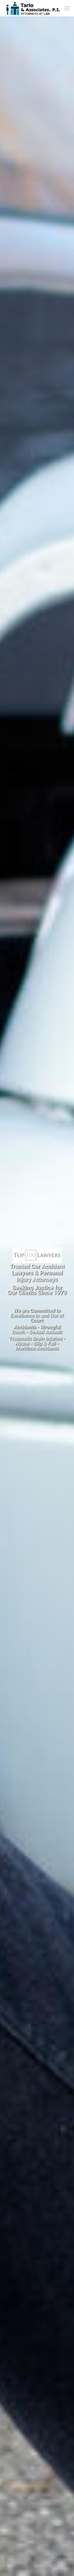 Tario & Associates, P.S. - Bellingham WA Lawyers